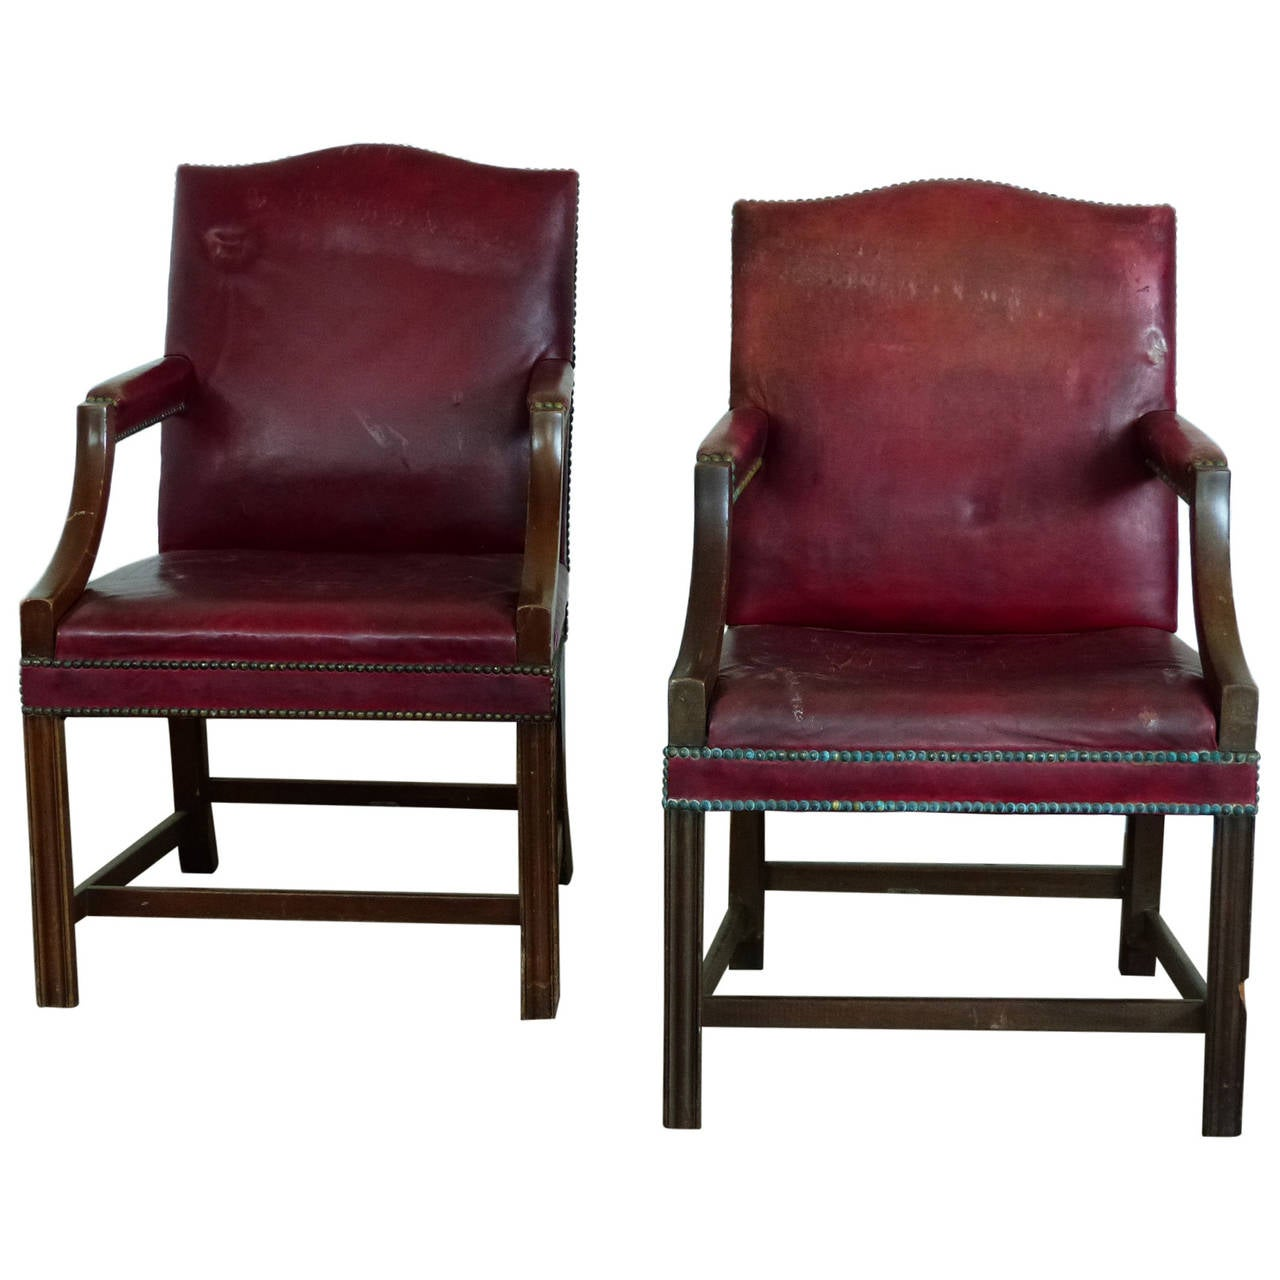 Bankers Chairs Pair Of Leather Lounge Chairs Or Bankers Chairs At 1stdibs